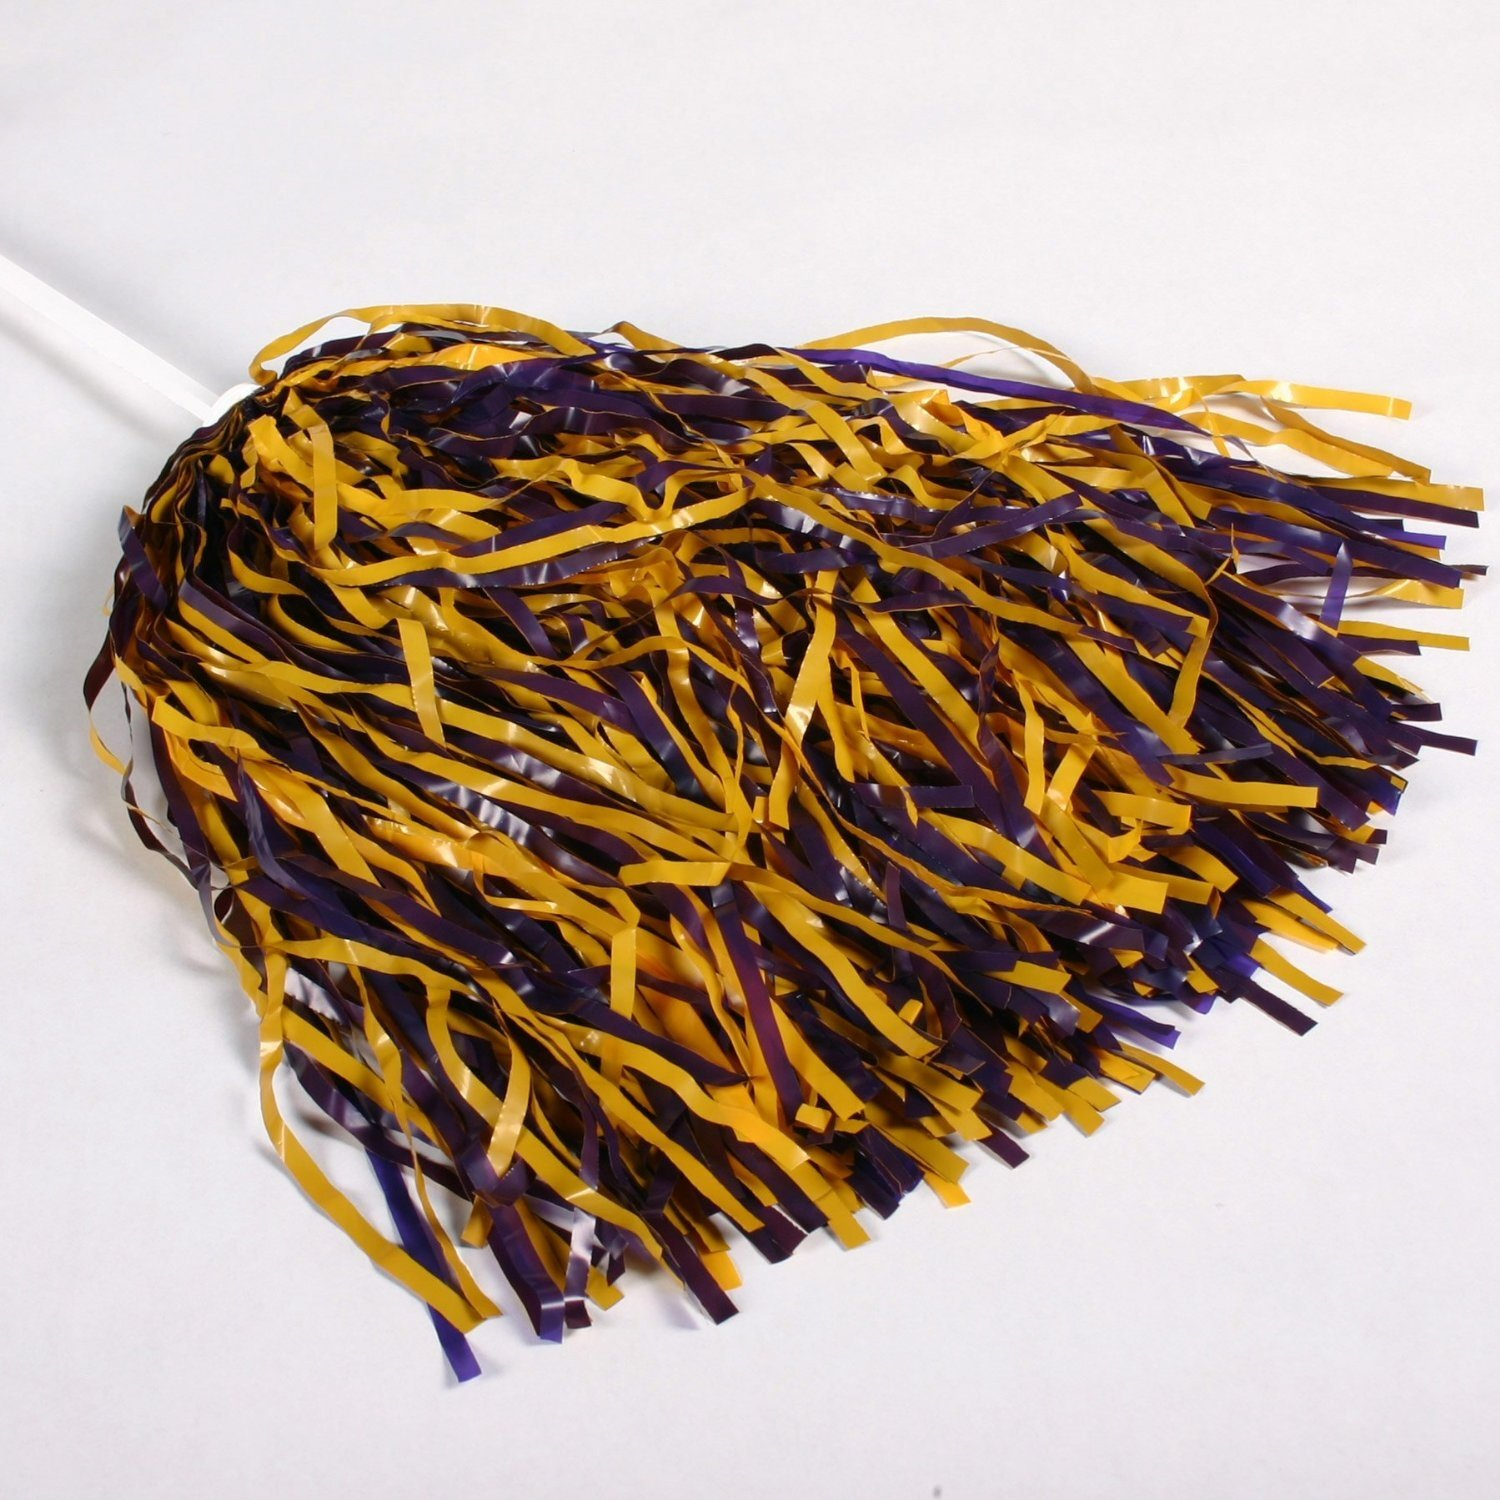 6 Pack Purple and Gold Pom Poms (Set of 6) Wincraft